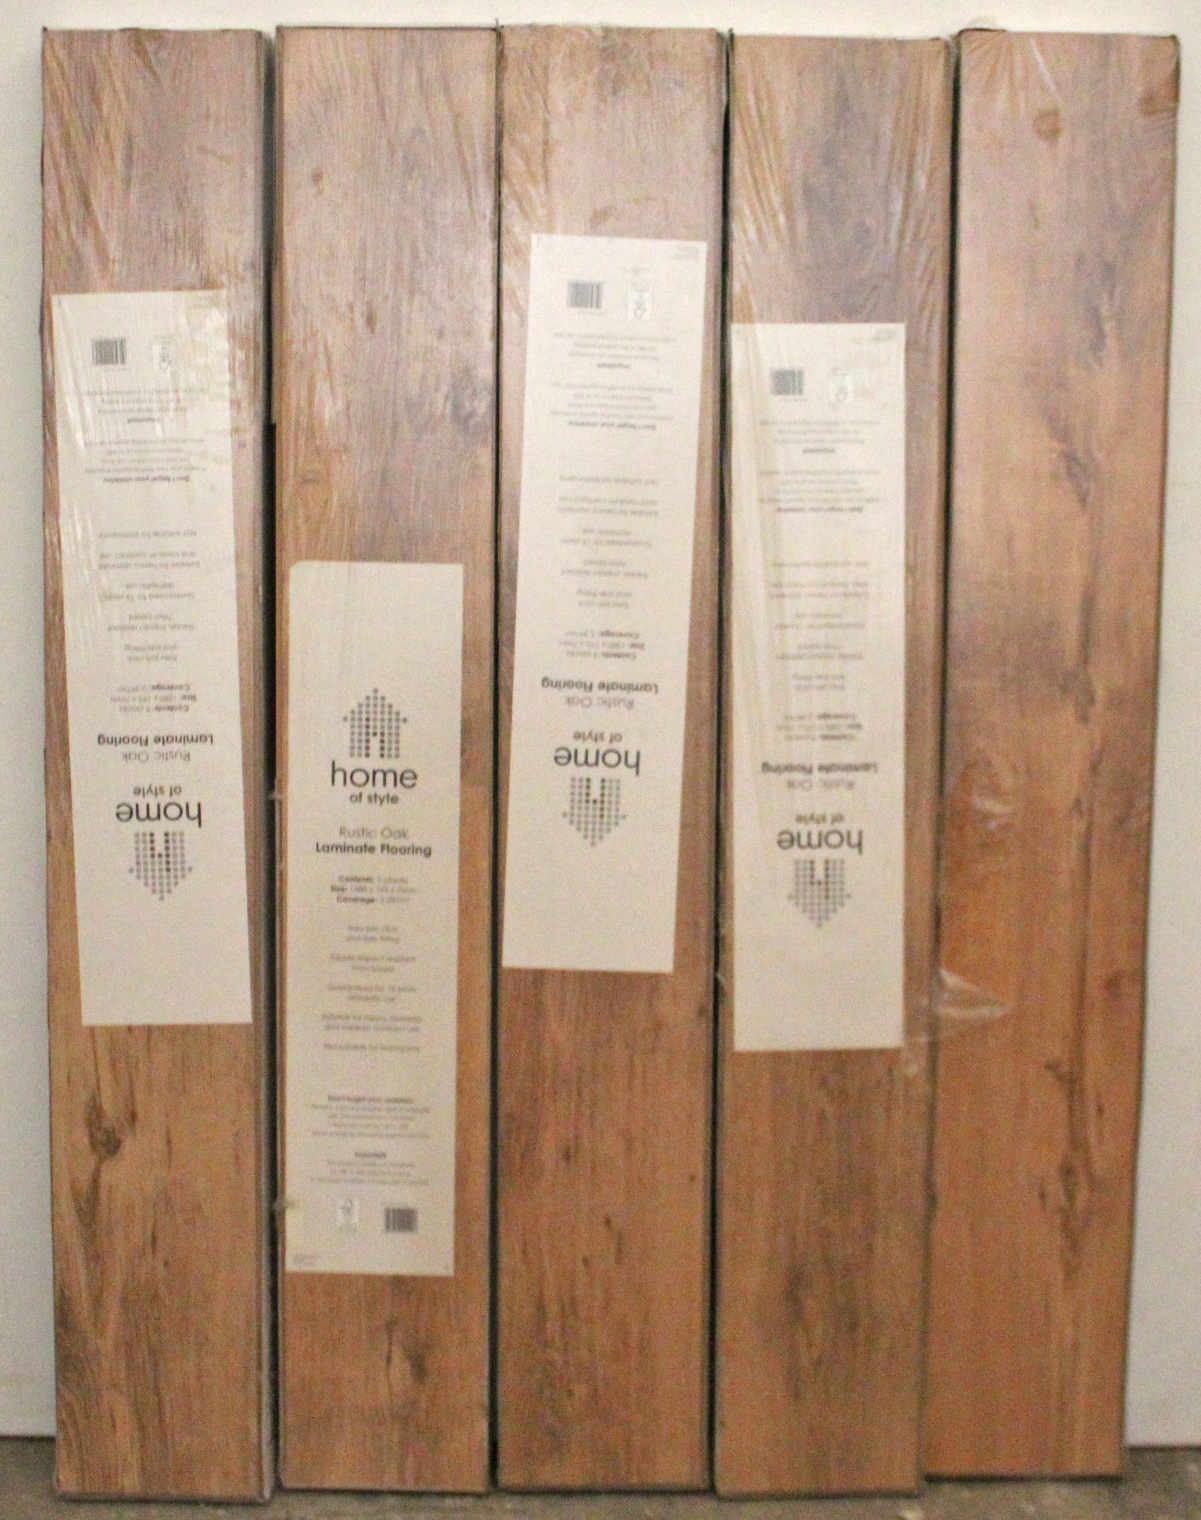 Lot 29 - Five packs of Home-of-Style laminate flooring, - as new.